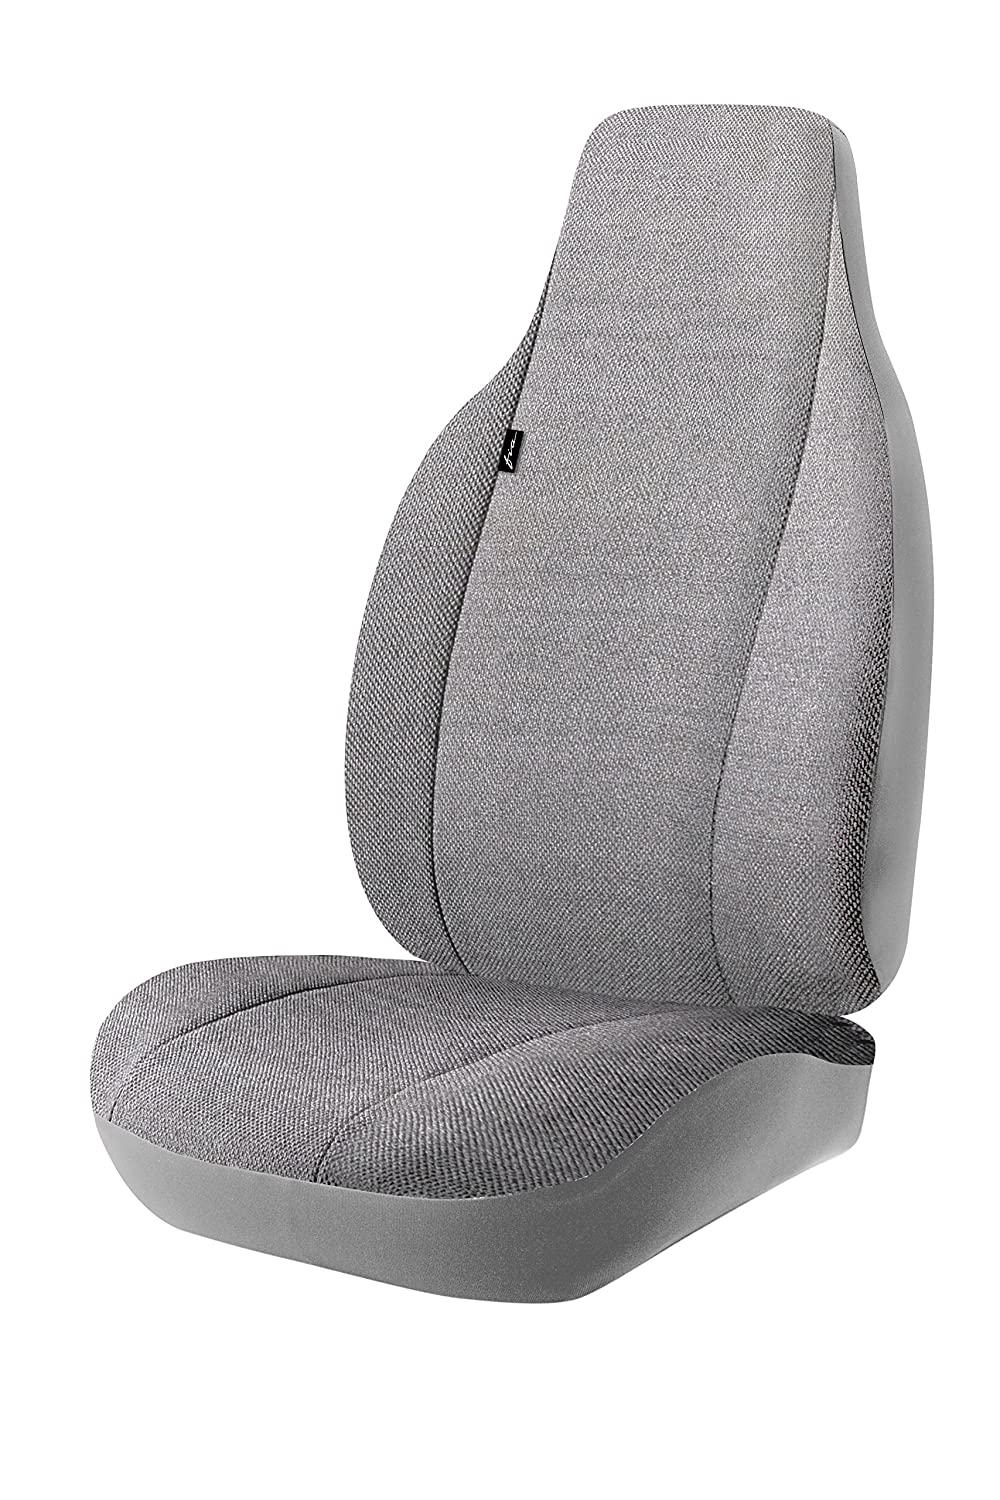 Front Split Seat 40//20//40//Saddle Blanket Fia TRS49-38 GRAY TRS40 Solid Wrangler Solid Gray Seat Cover